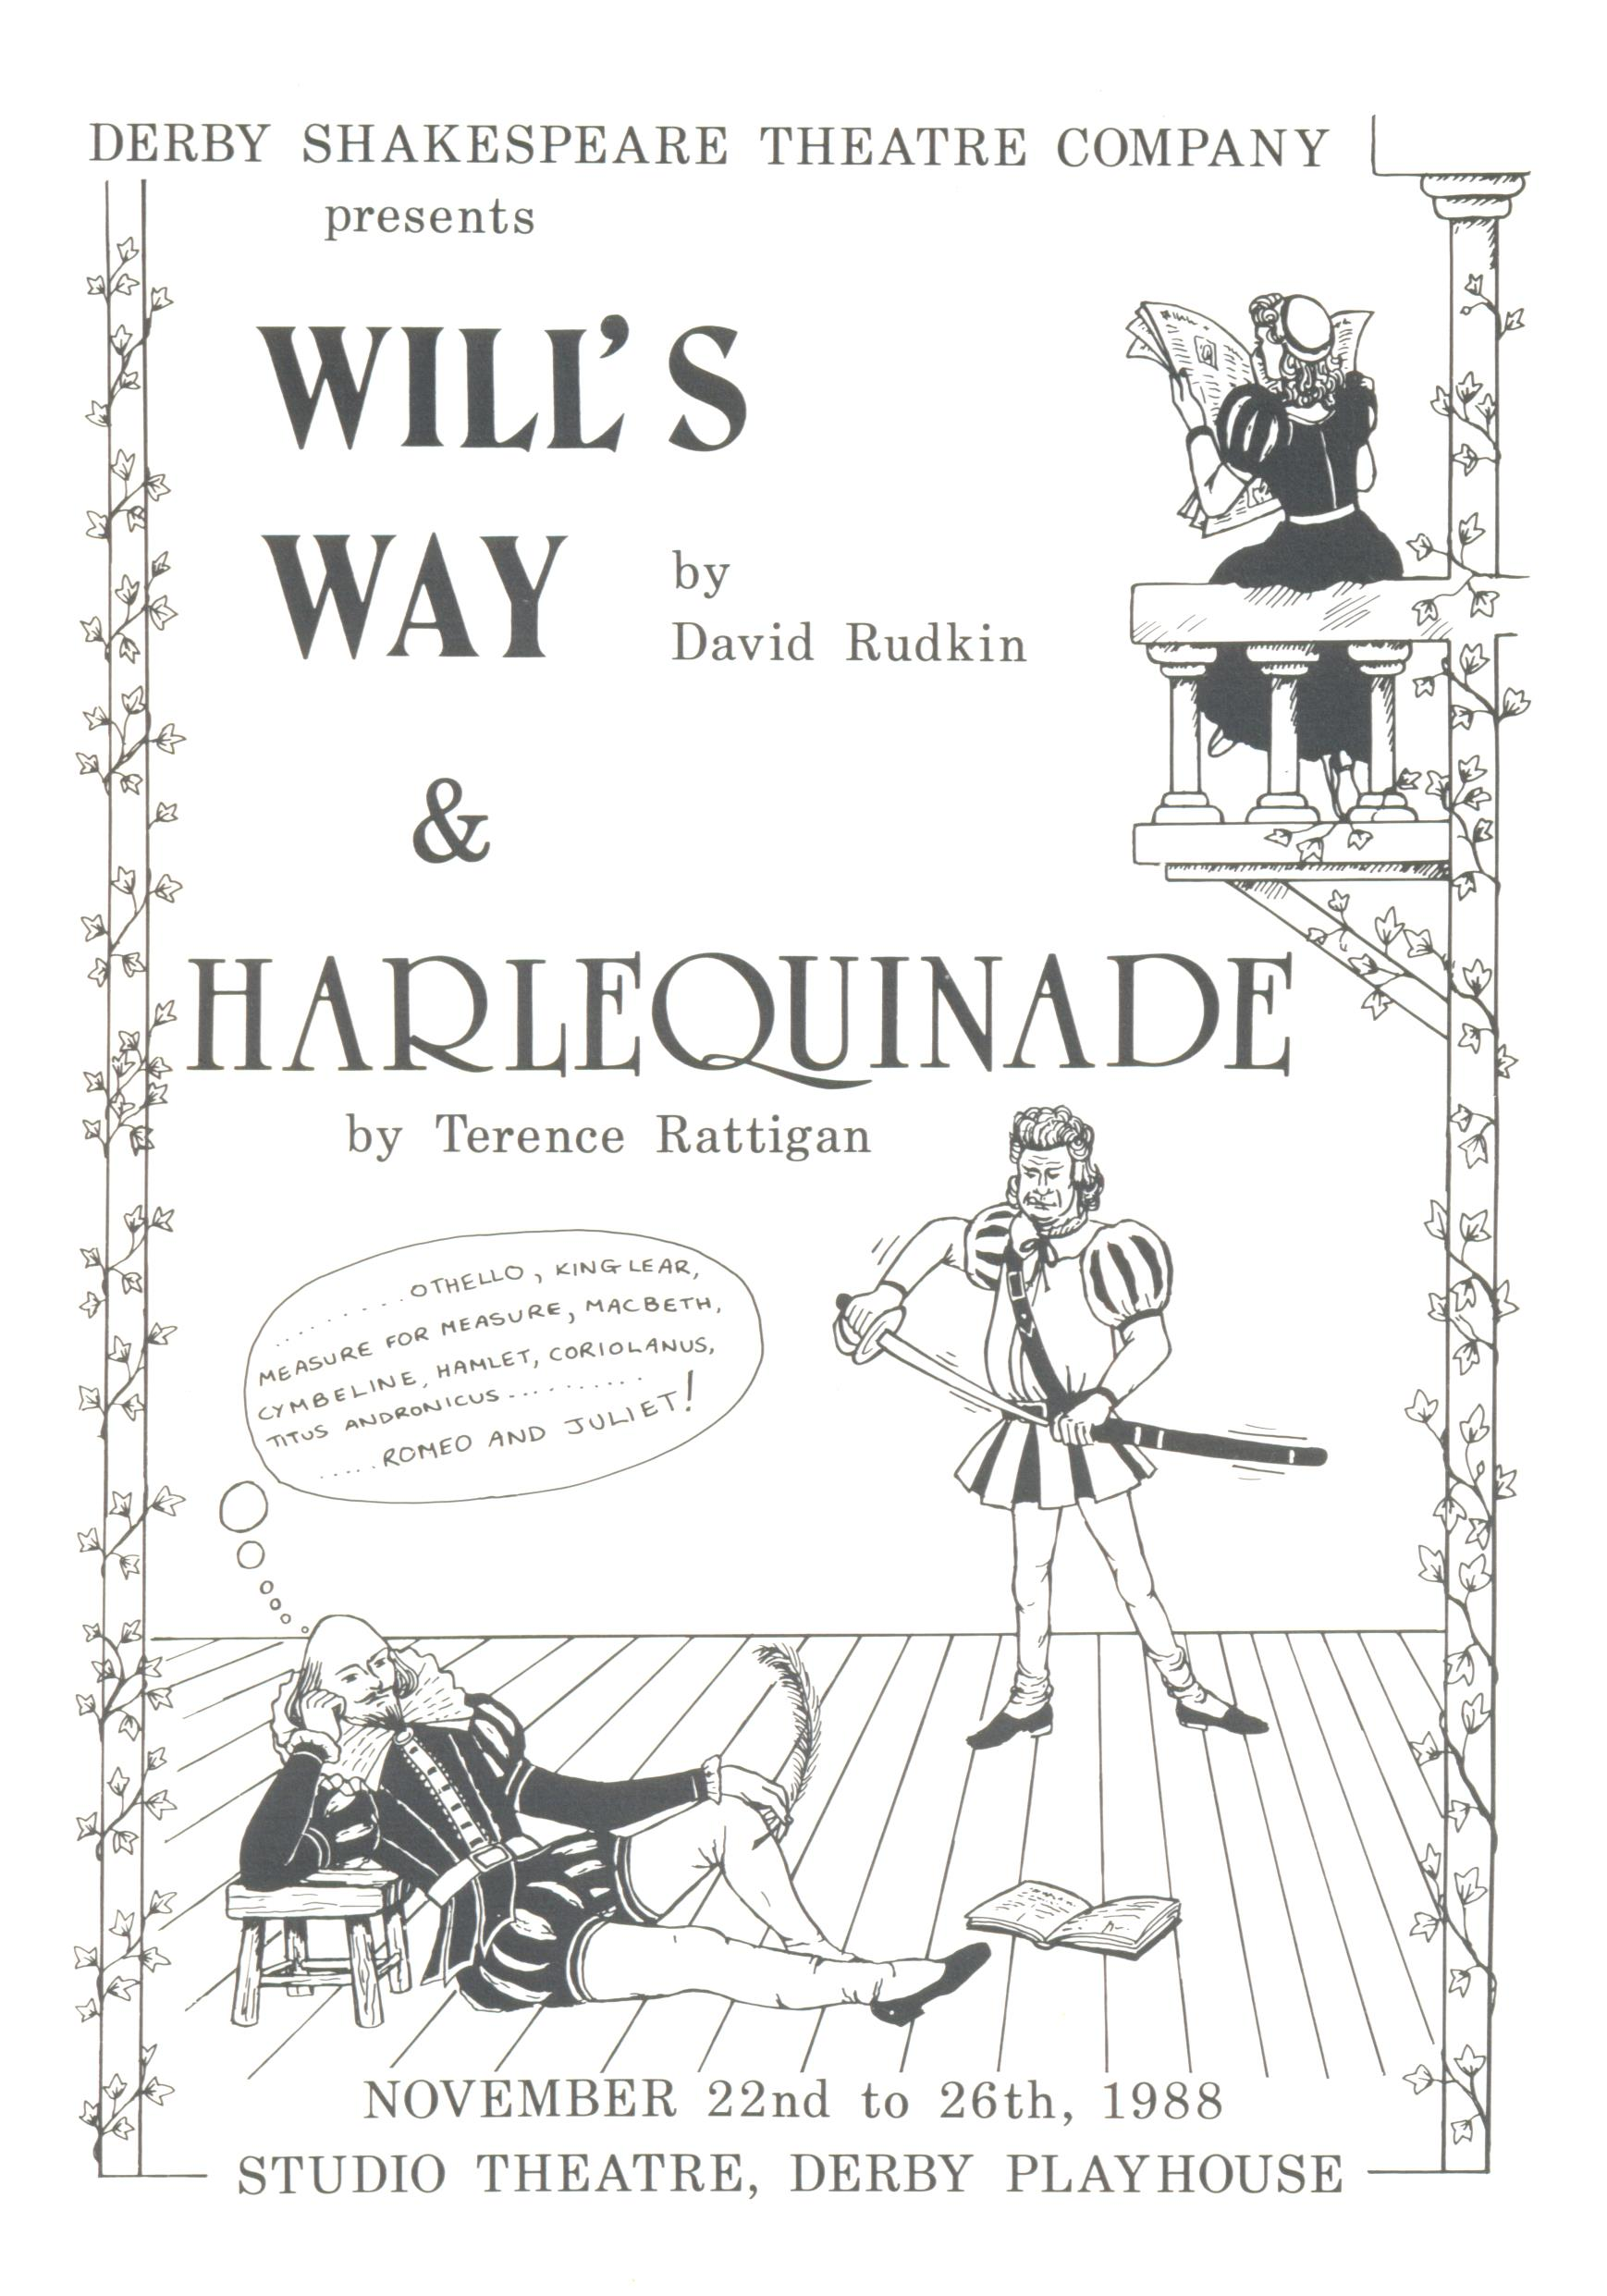 'Will's Way' & 'Harlequinade' 1988